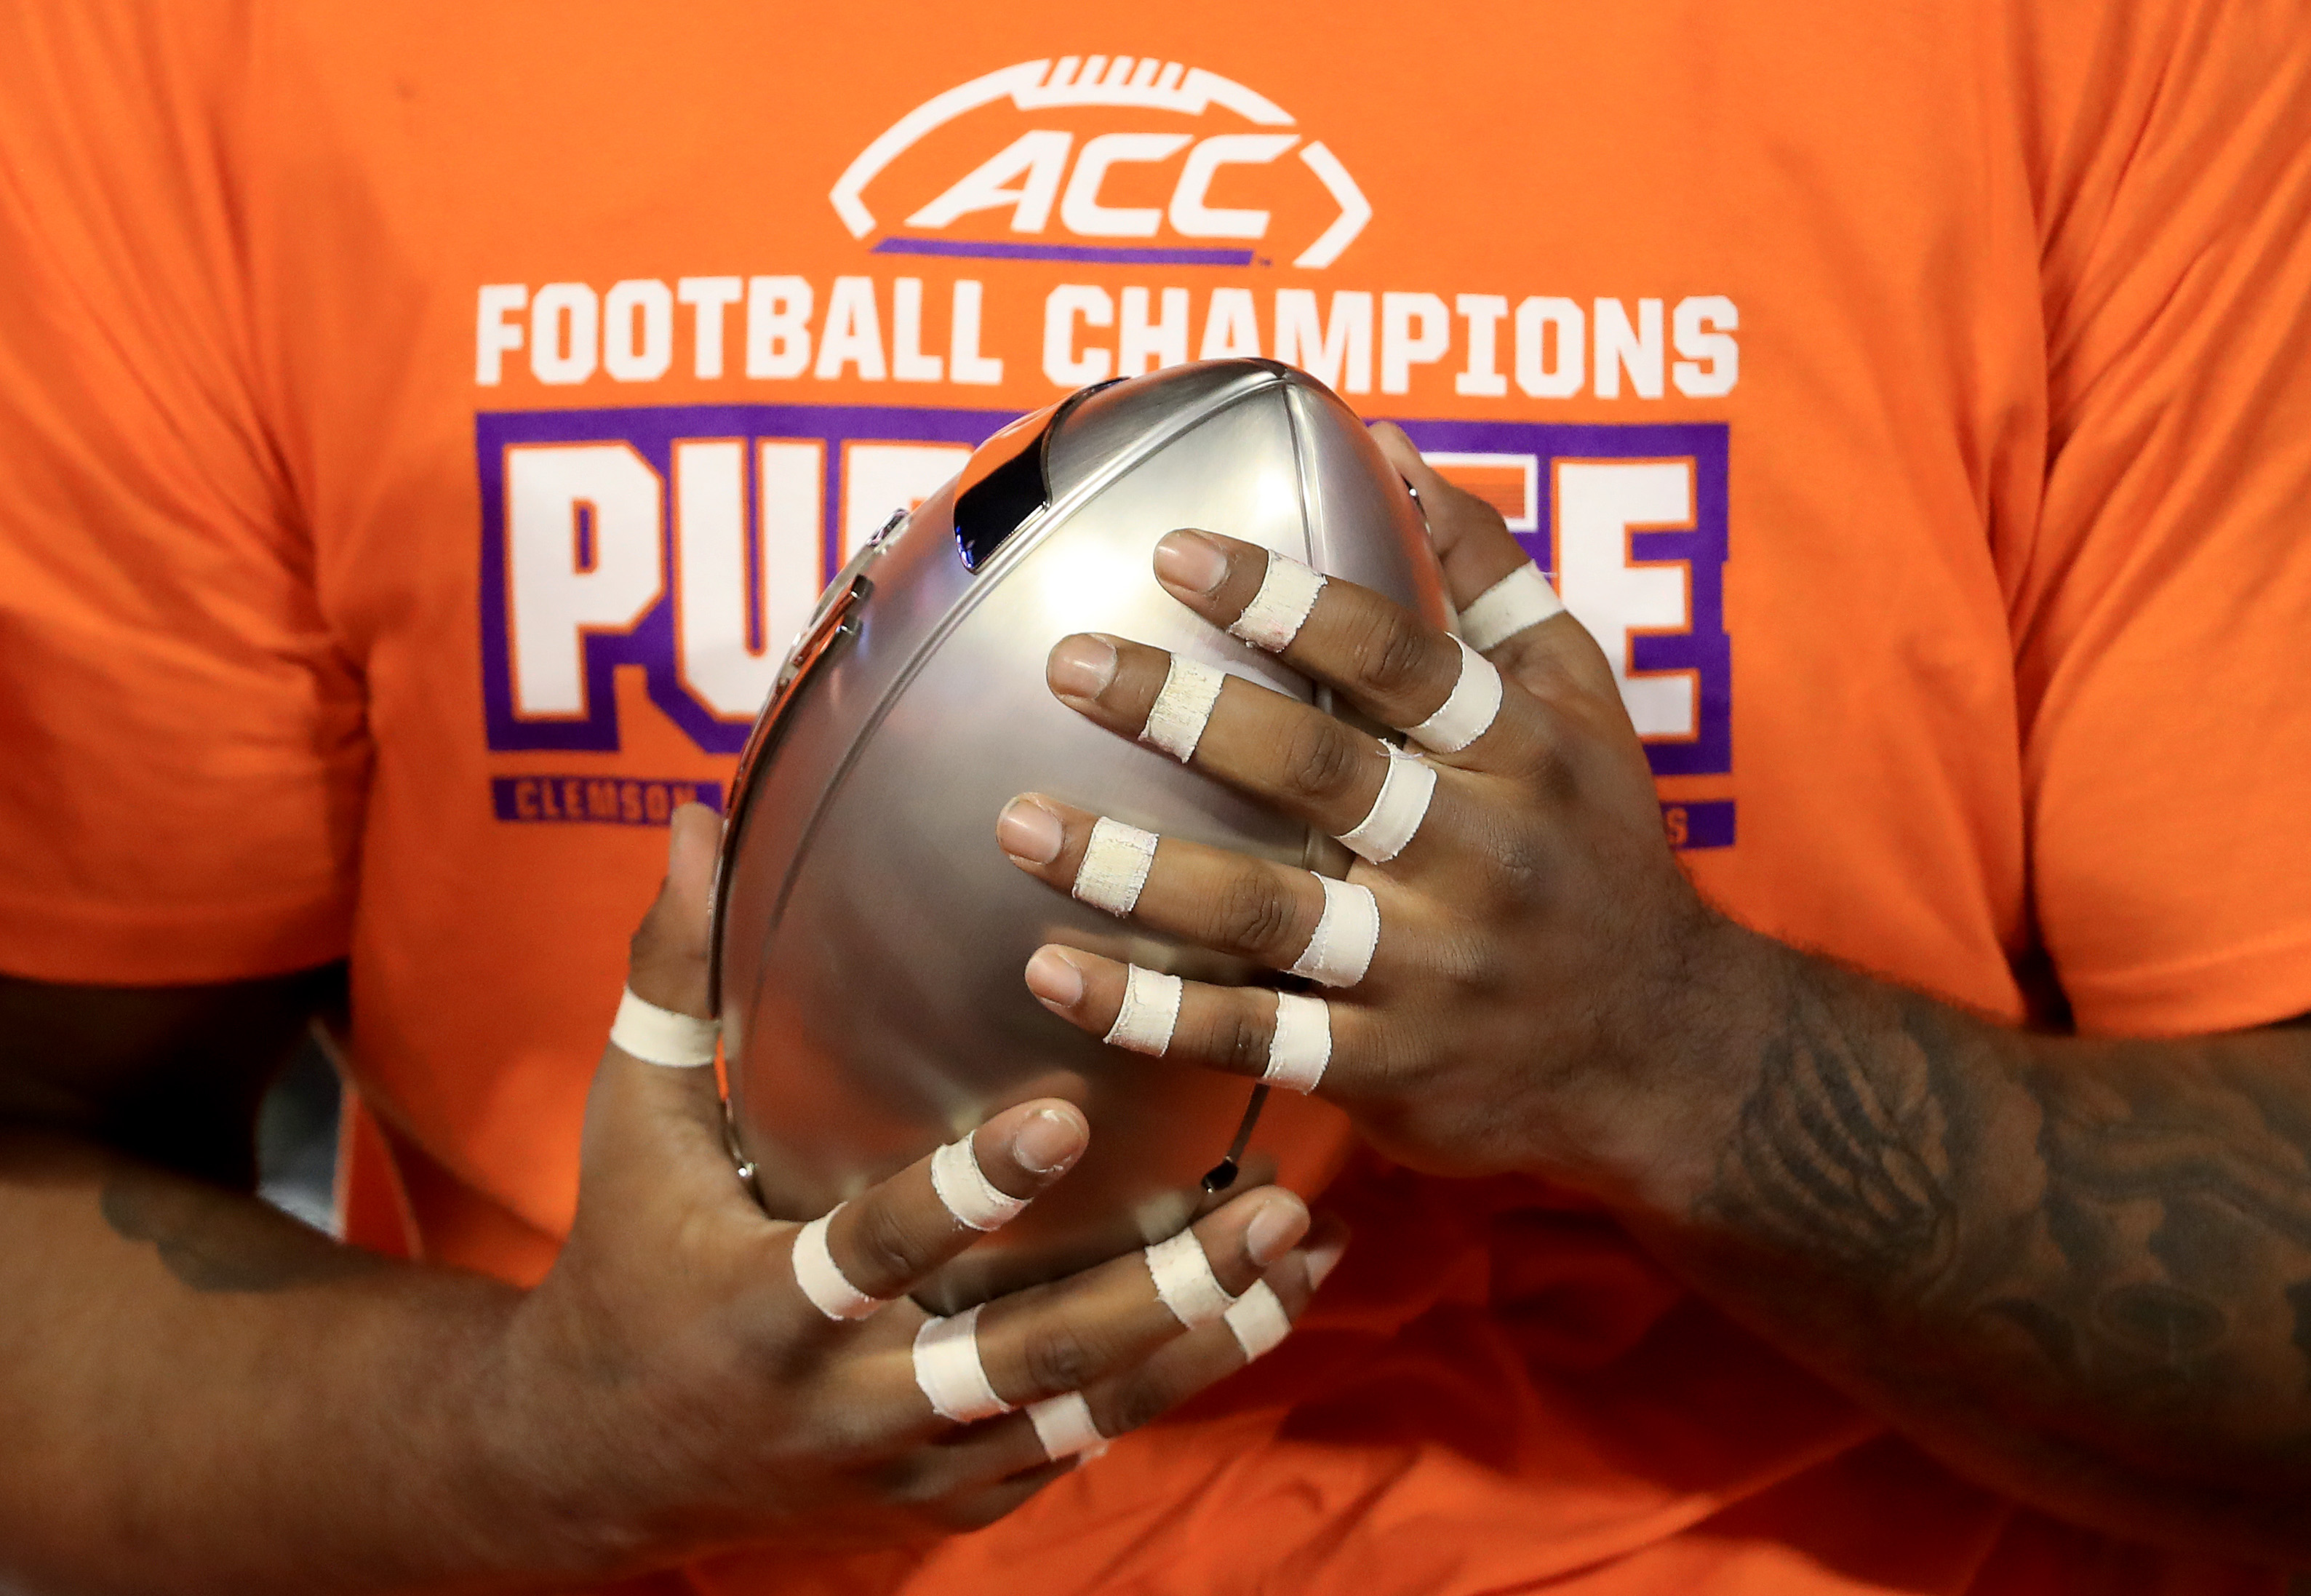 A detailed view of the trophy after the Clemson Tigers defeated the Virginia Cavaliers 64-17 in the ACC Football Championship game at Bank of America Stadium on December 07, 2019 in Charlotte, North Carolina.